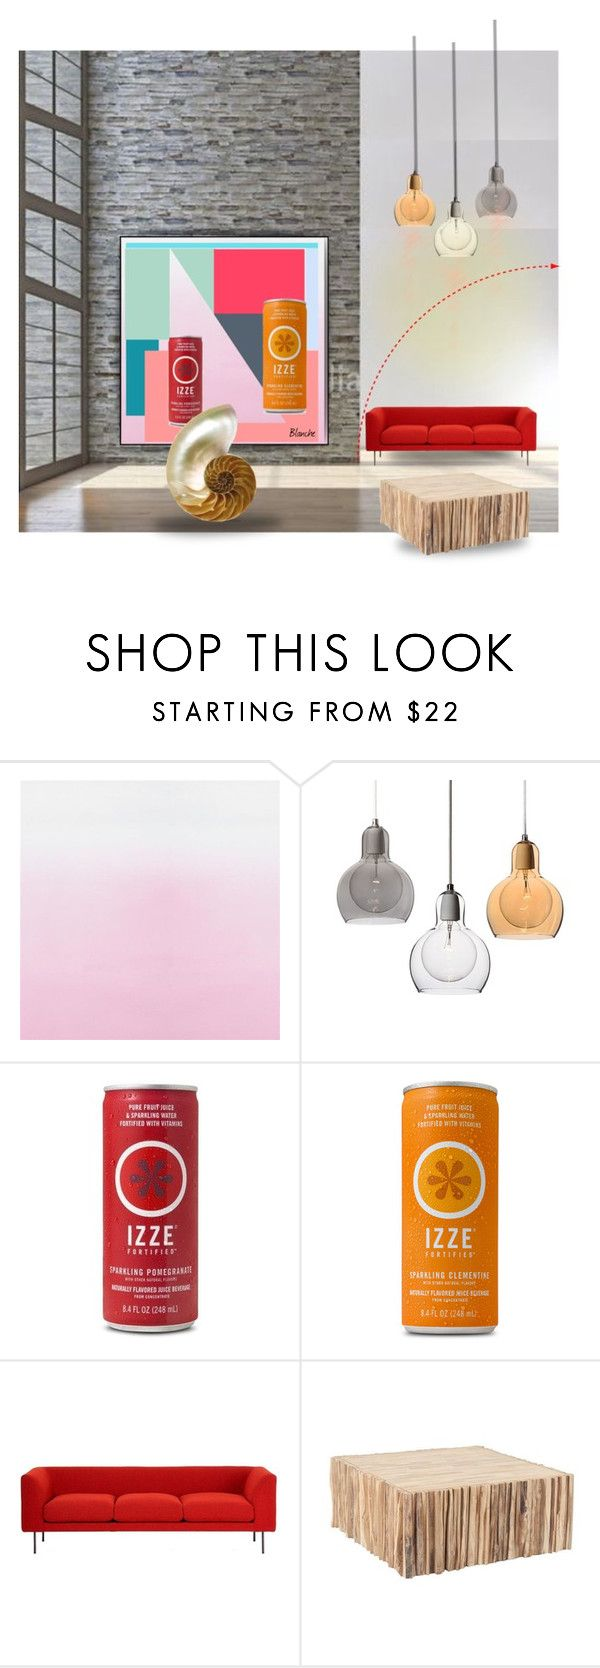 """""""Johnny B."""" by lablanchenoire ❤ liked on Polyvore featuring interior, interiors, interior design, home, home decor, interior decorating and Nautilus"""